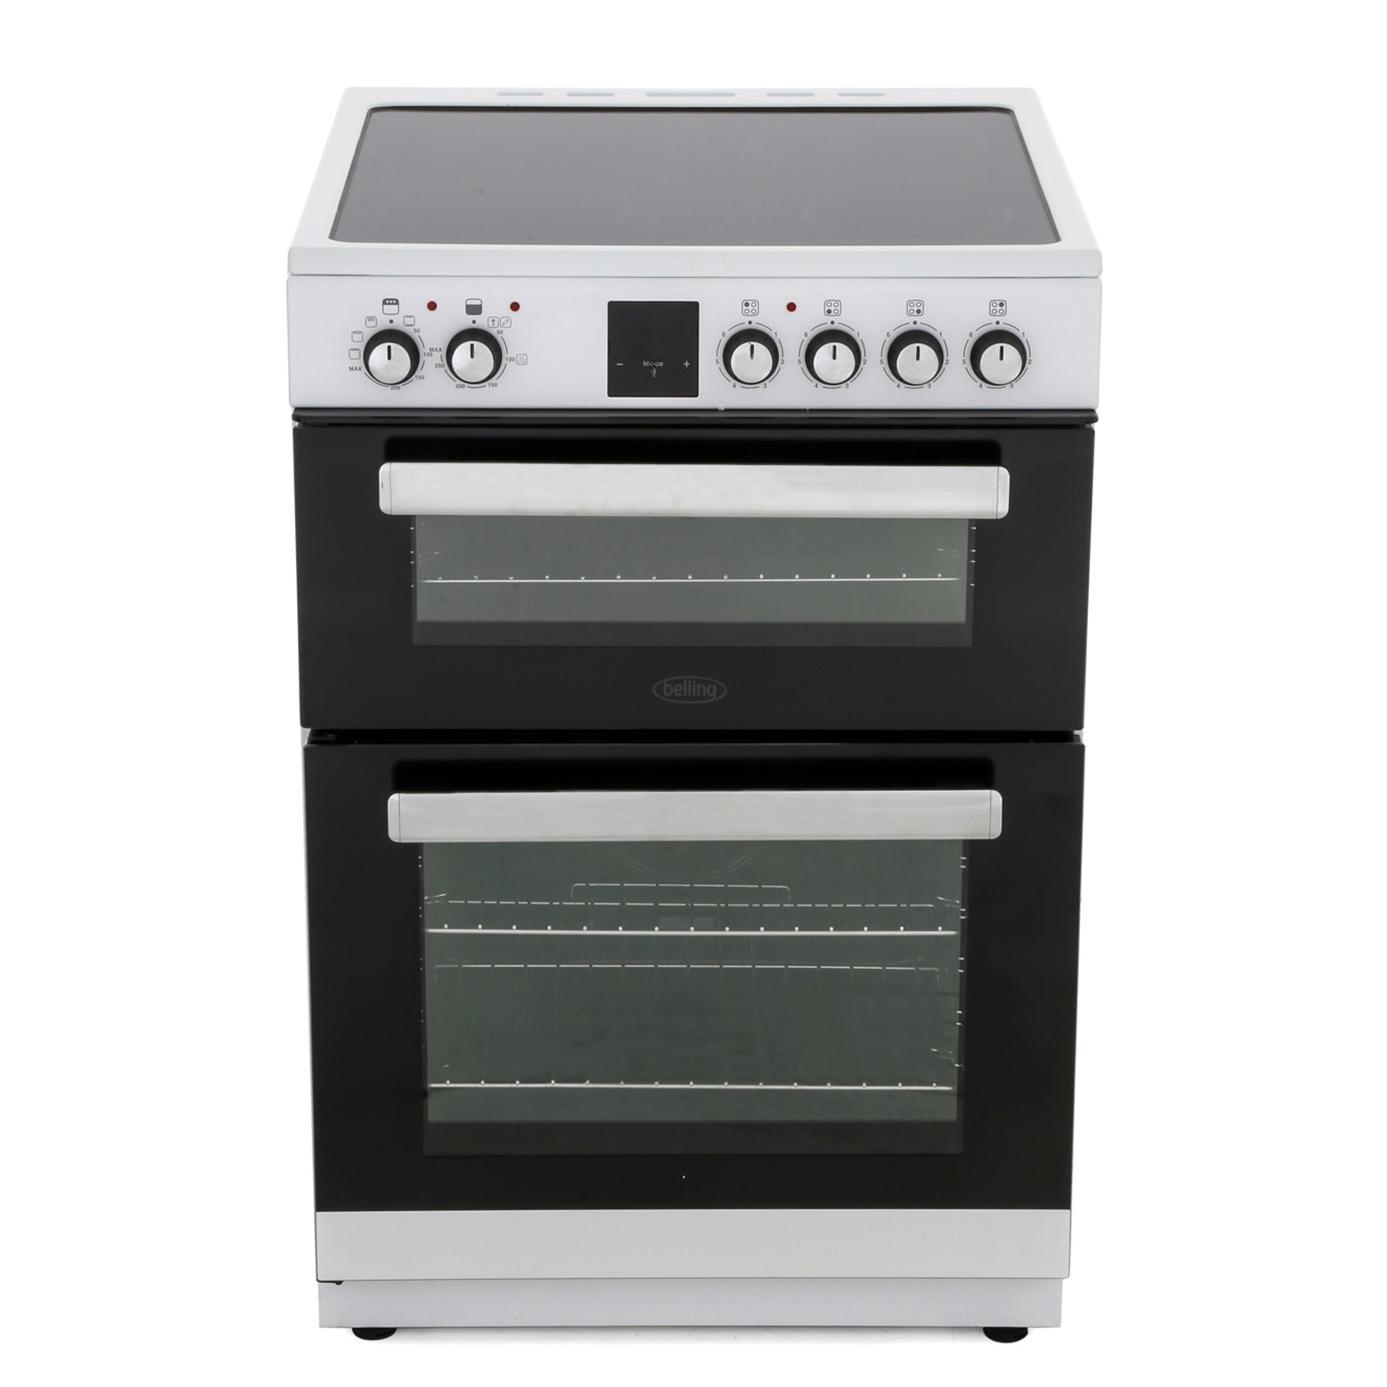 Belling FSE608DPC Electric Cooker with Double Oven